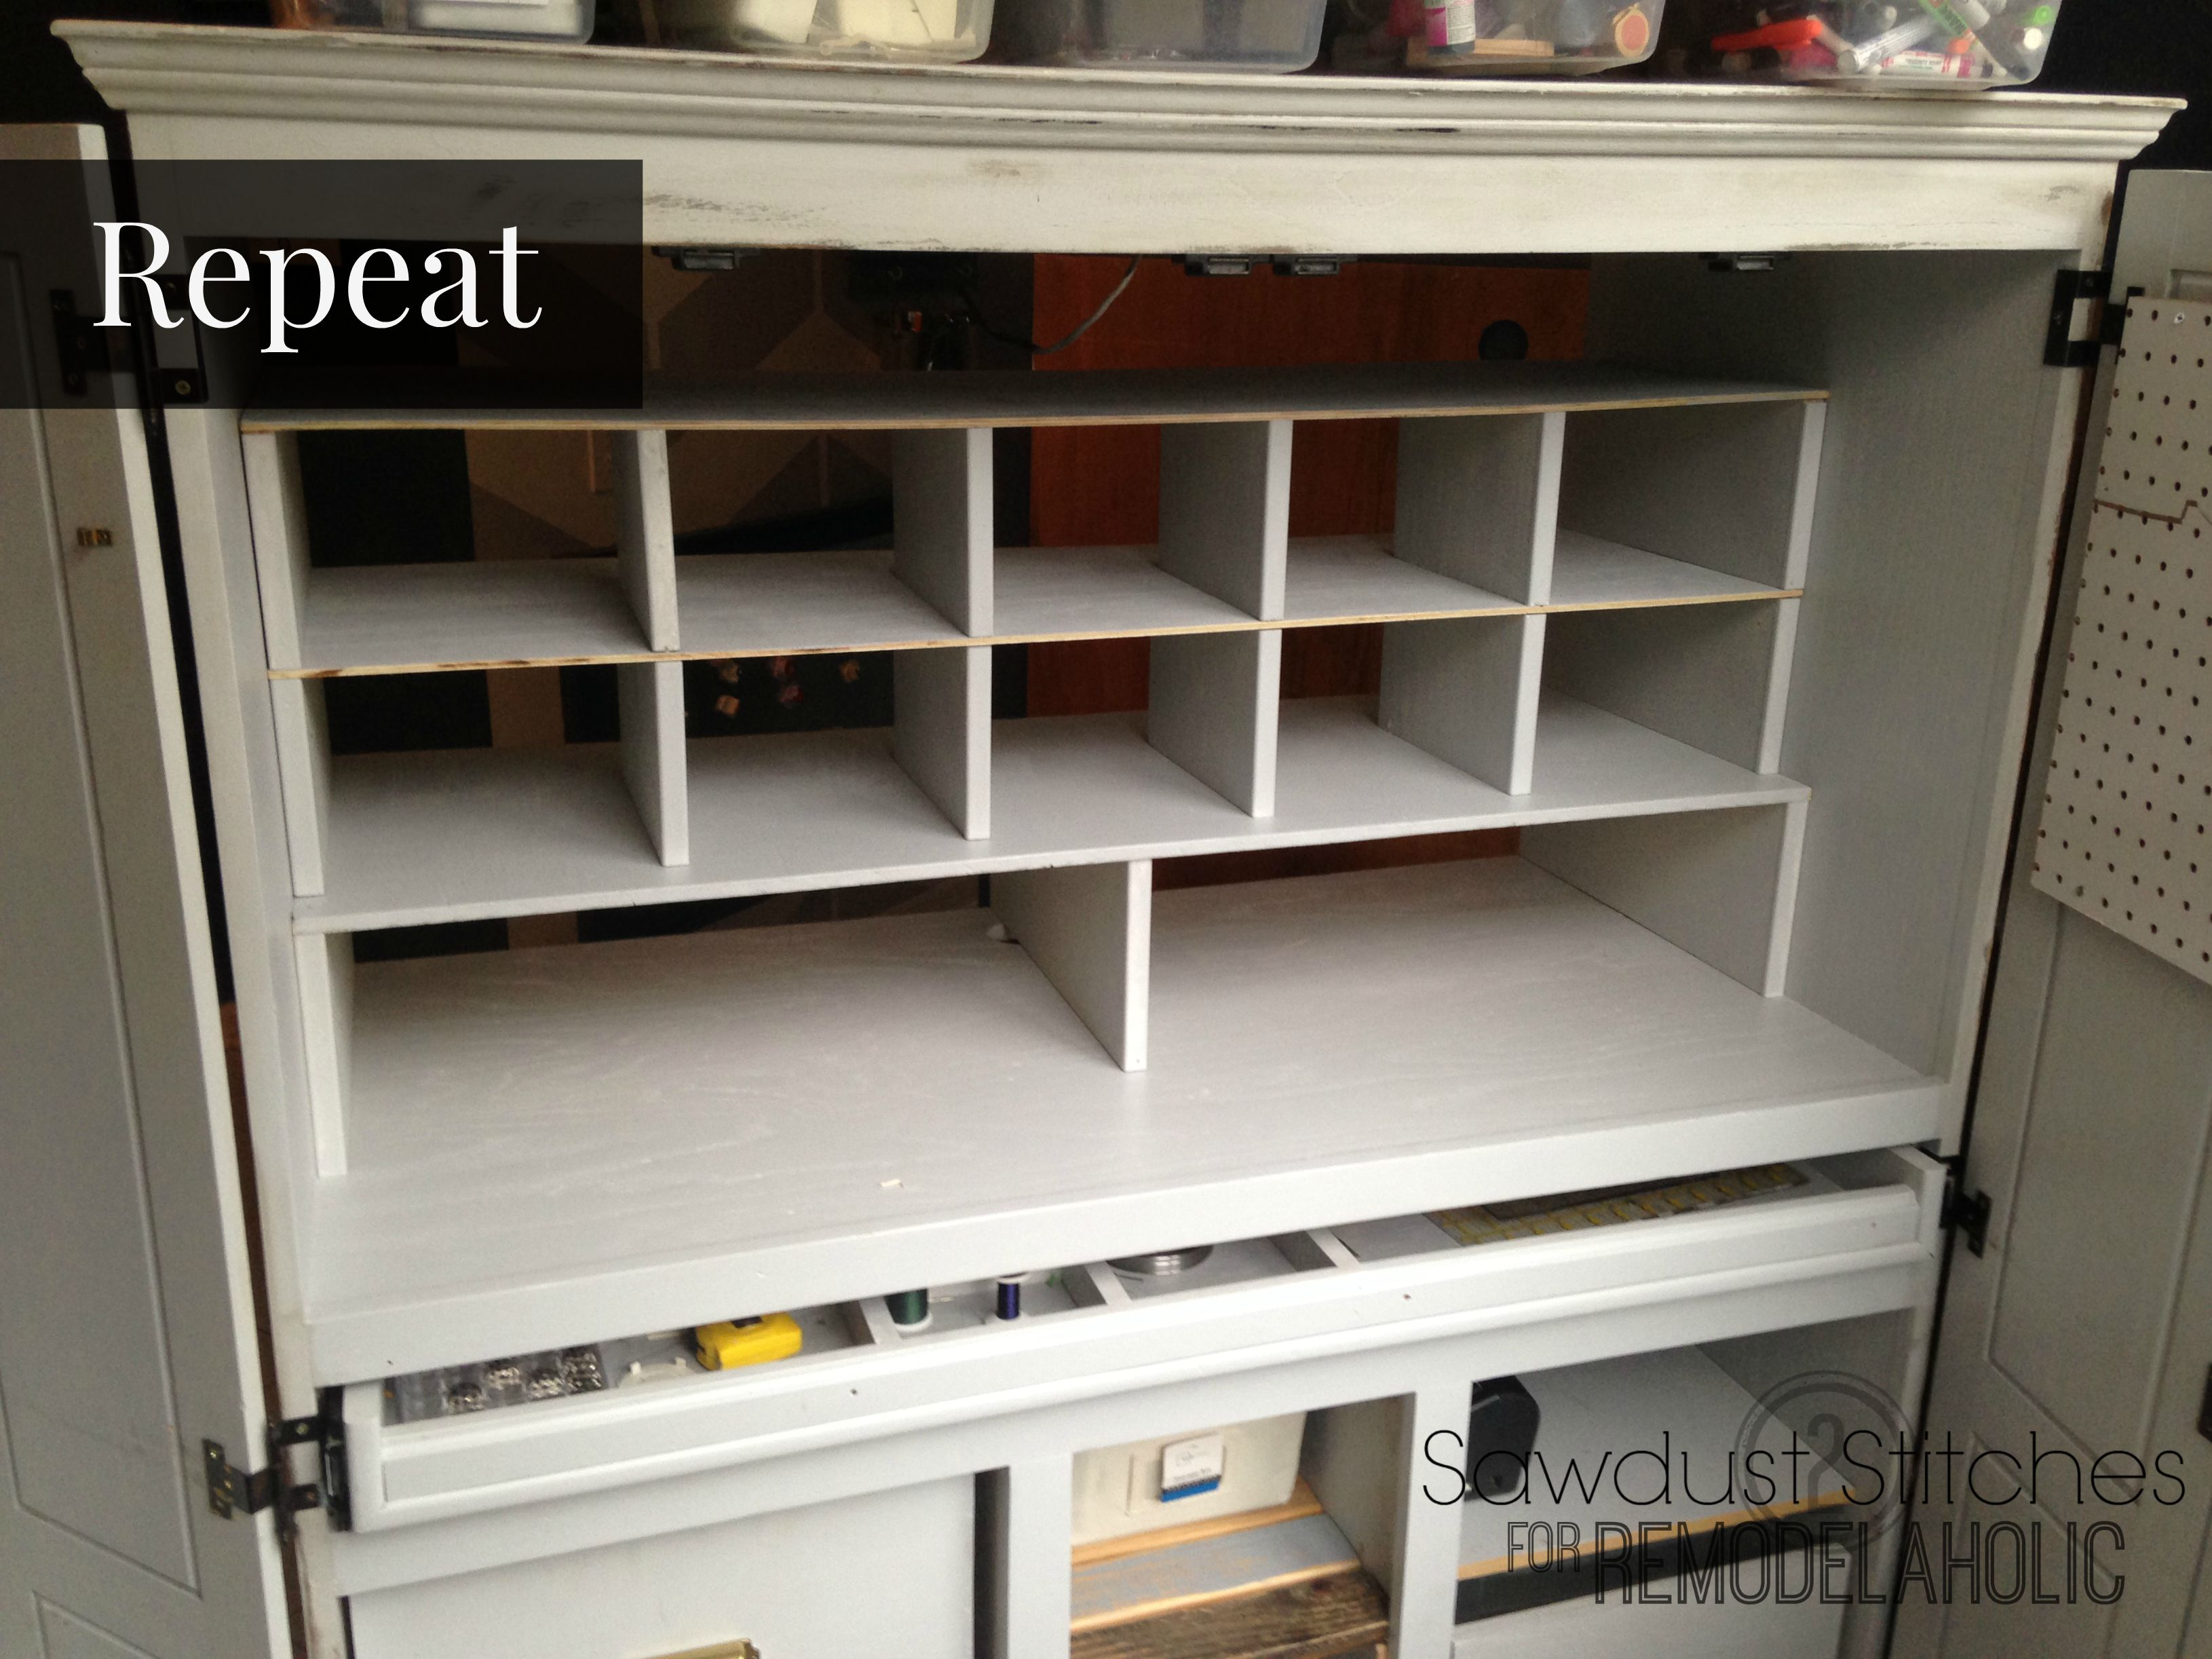 Inspiration for repurposing an old entertainment center make inspiration for repurposing an old entertainment center make blueprint like drawers instead of the cubbies malvernweather Choice Image